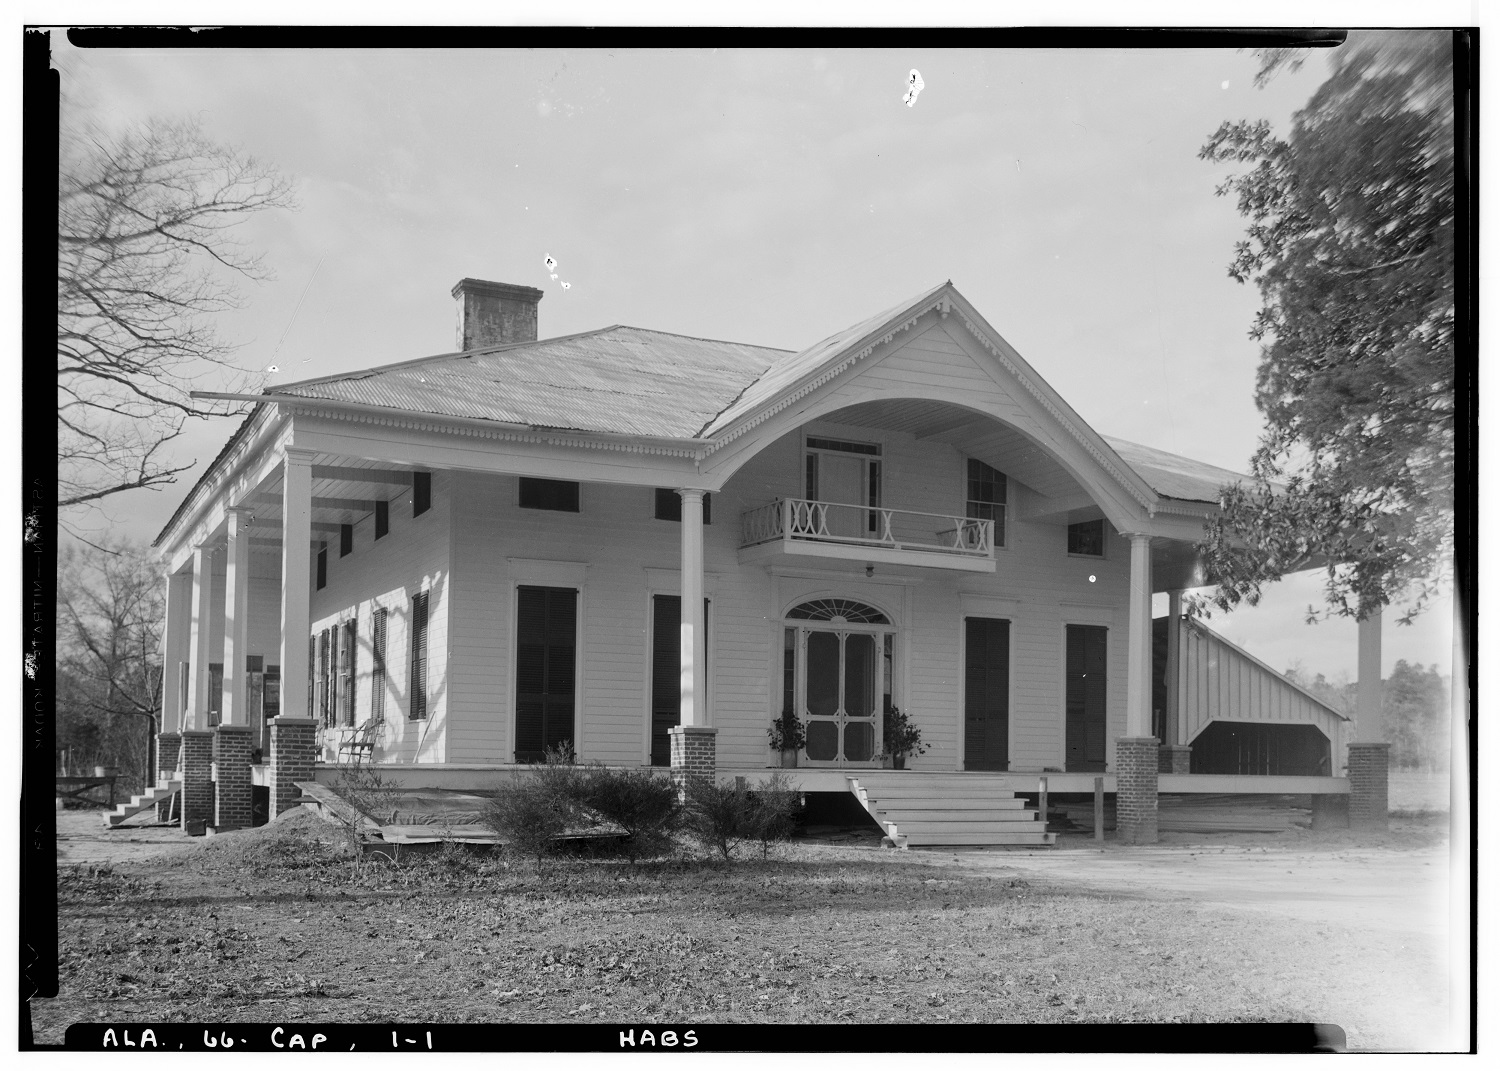 Huff House Capell Huff House At Pebble Hill Al Built Ca 1850 Recorded In